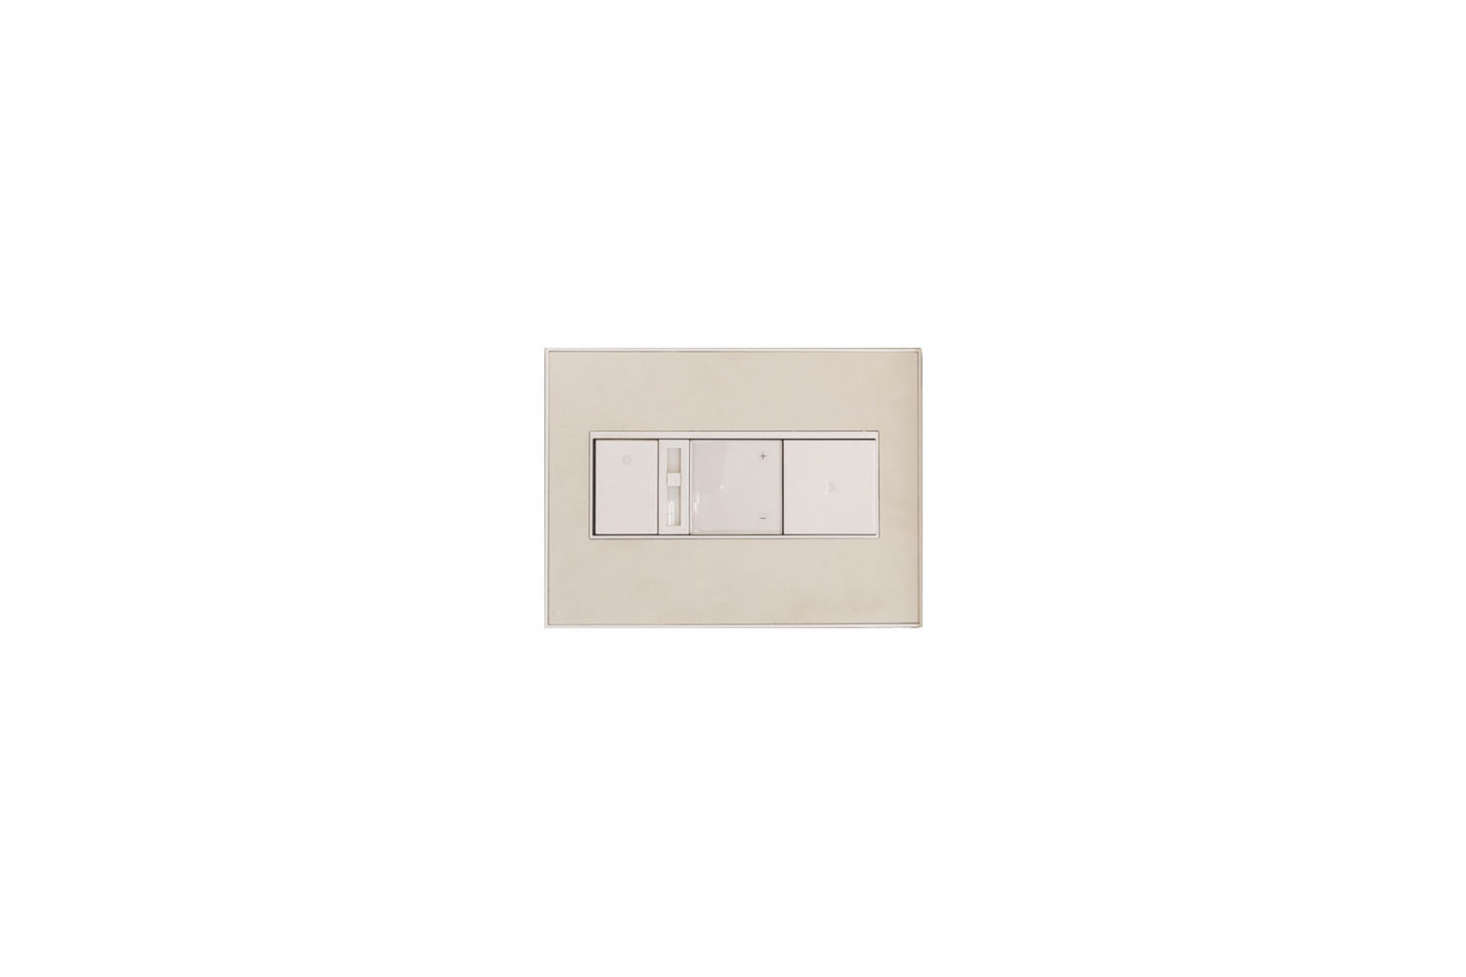 The switch-plate covers are from US-based company Legrand: the Adorne Custom Wall Plate, 3-Gang, White Trim can be painted to match the color of the wall.